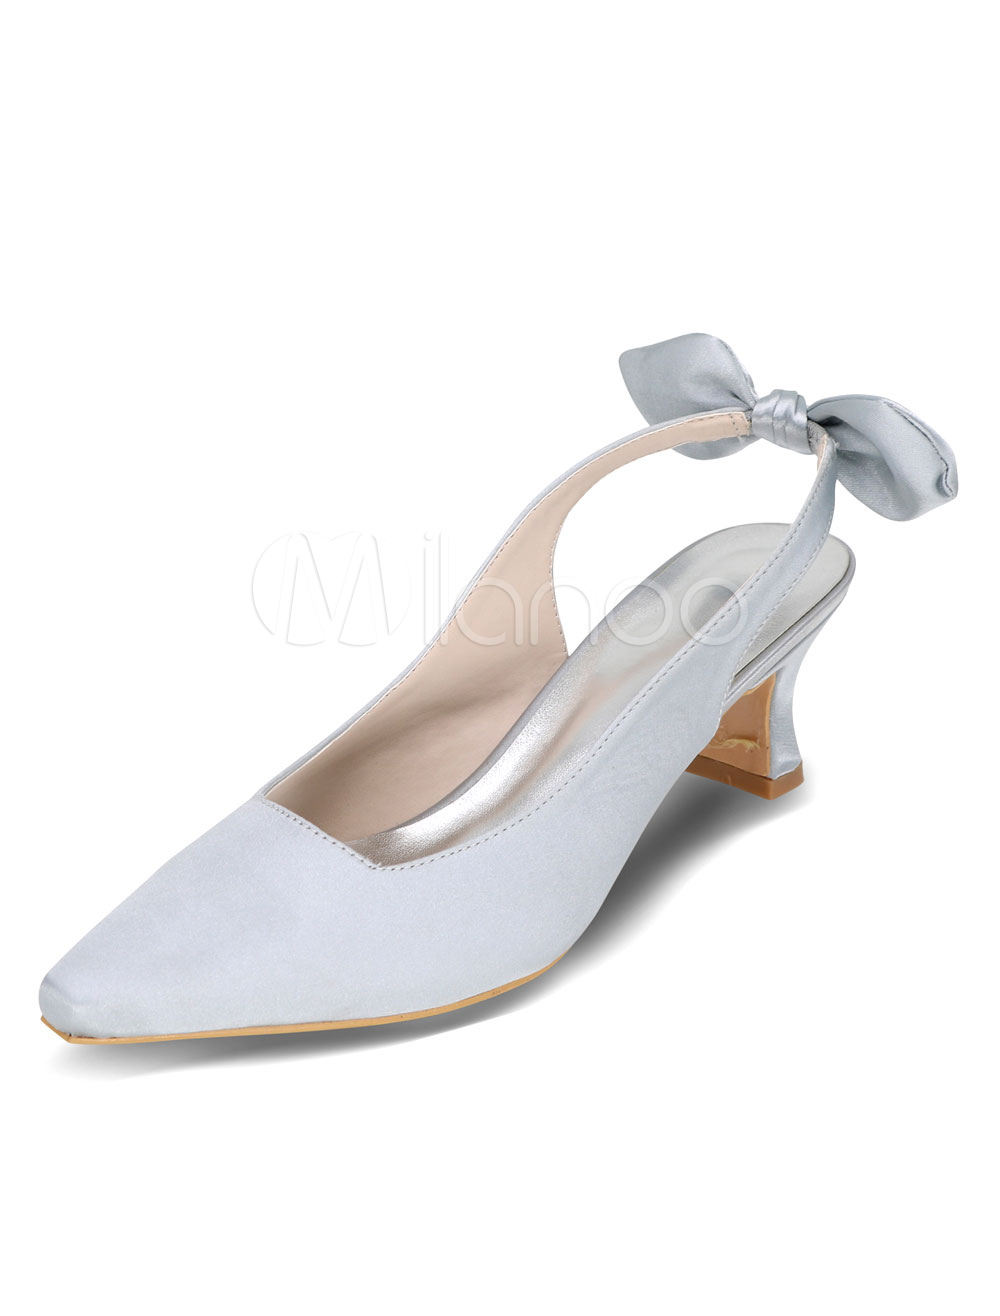 Silver Wedding Shoes High Heel Bows Elegant Satin Bridal Shoes